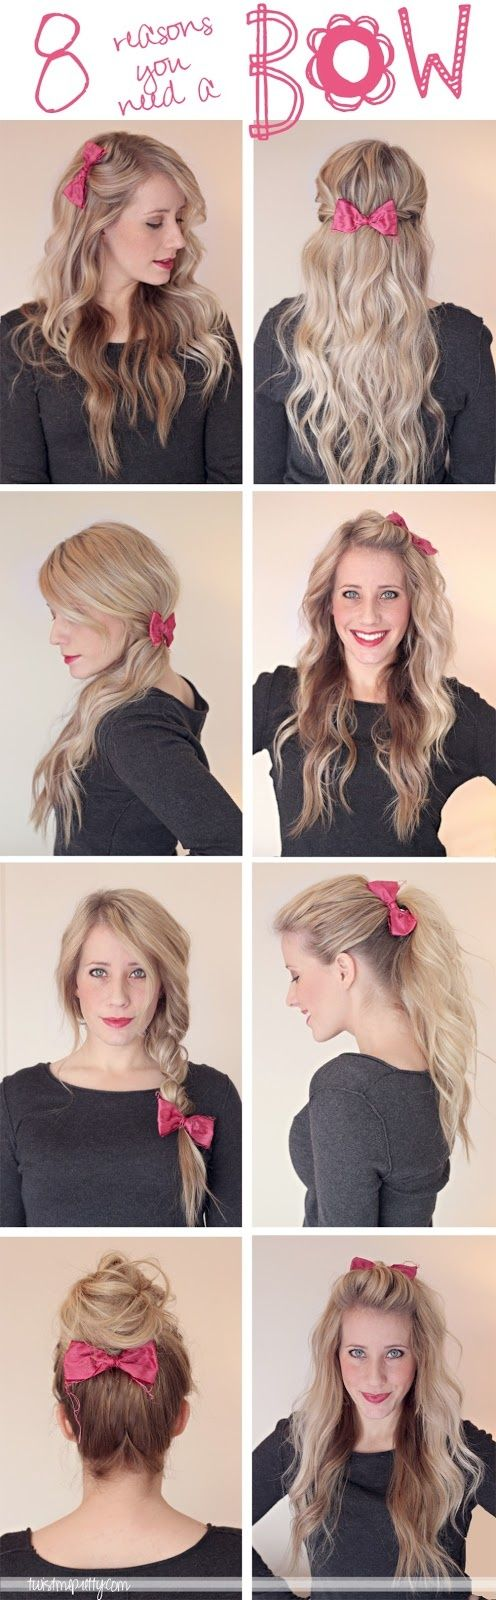 ways to use a bow hair and make up fun and knowledge pinterest